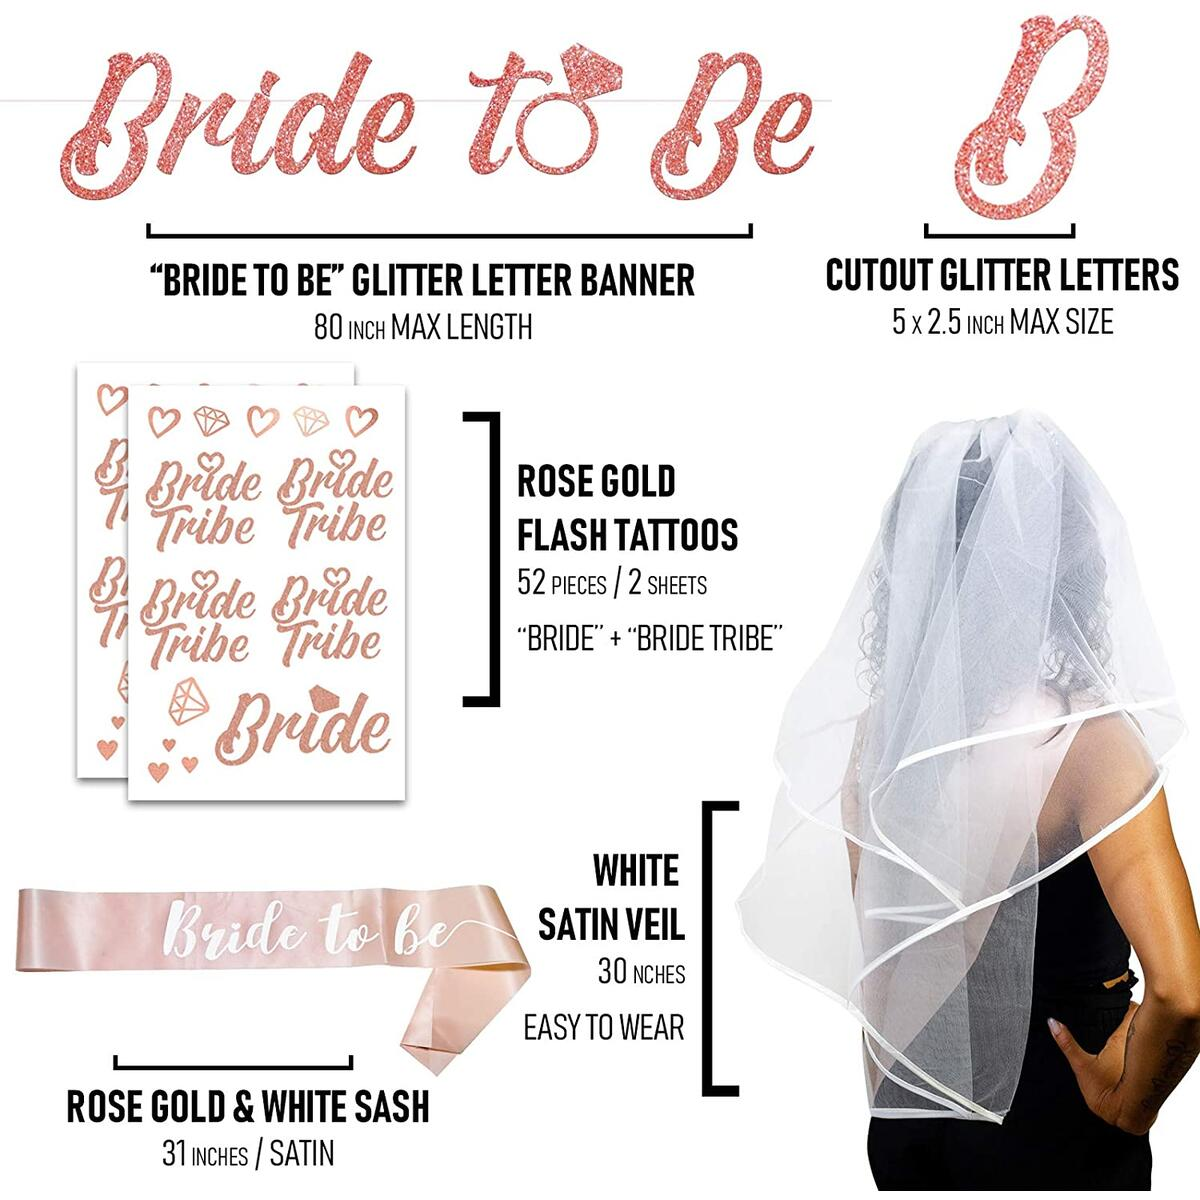 A3 DIRECT Bachelorette Party Decorations & Supplies - Rose Gold Bride to Be Sash & Banner, Tiara Crown, White Veils for Brides & 12 Bride Tribe Tattoos for Bridal Shower and Wedding Engagement Decor